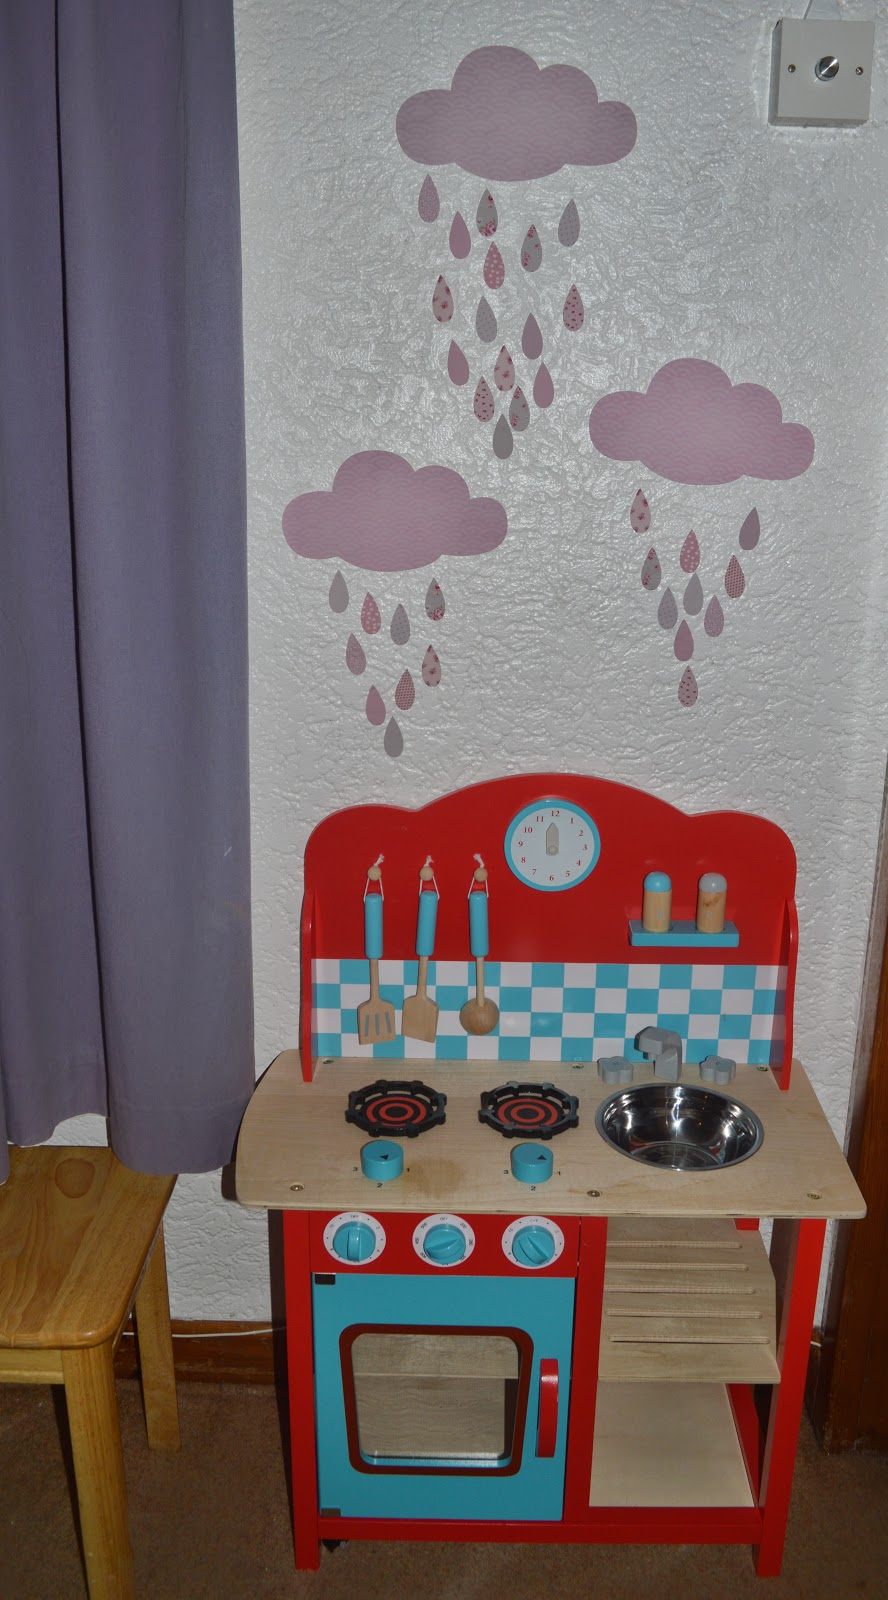 GLTC Cavendish Play kitchen Koko Kids 3 Clouds and Raindrops Wall Stickers